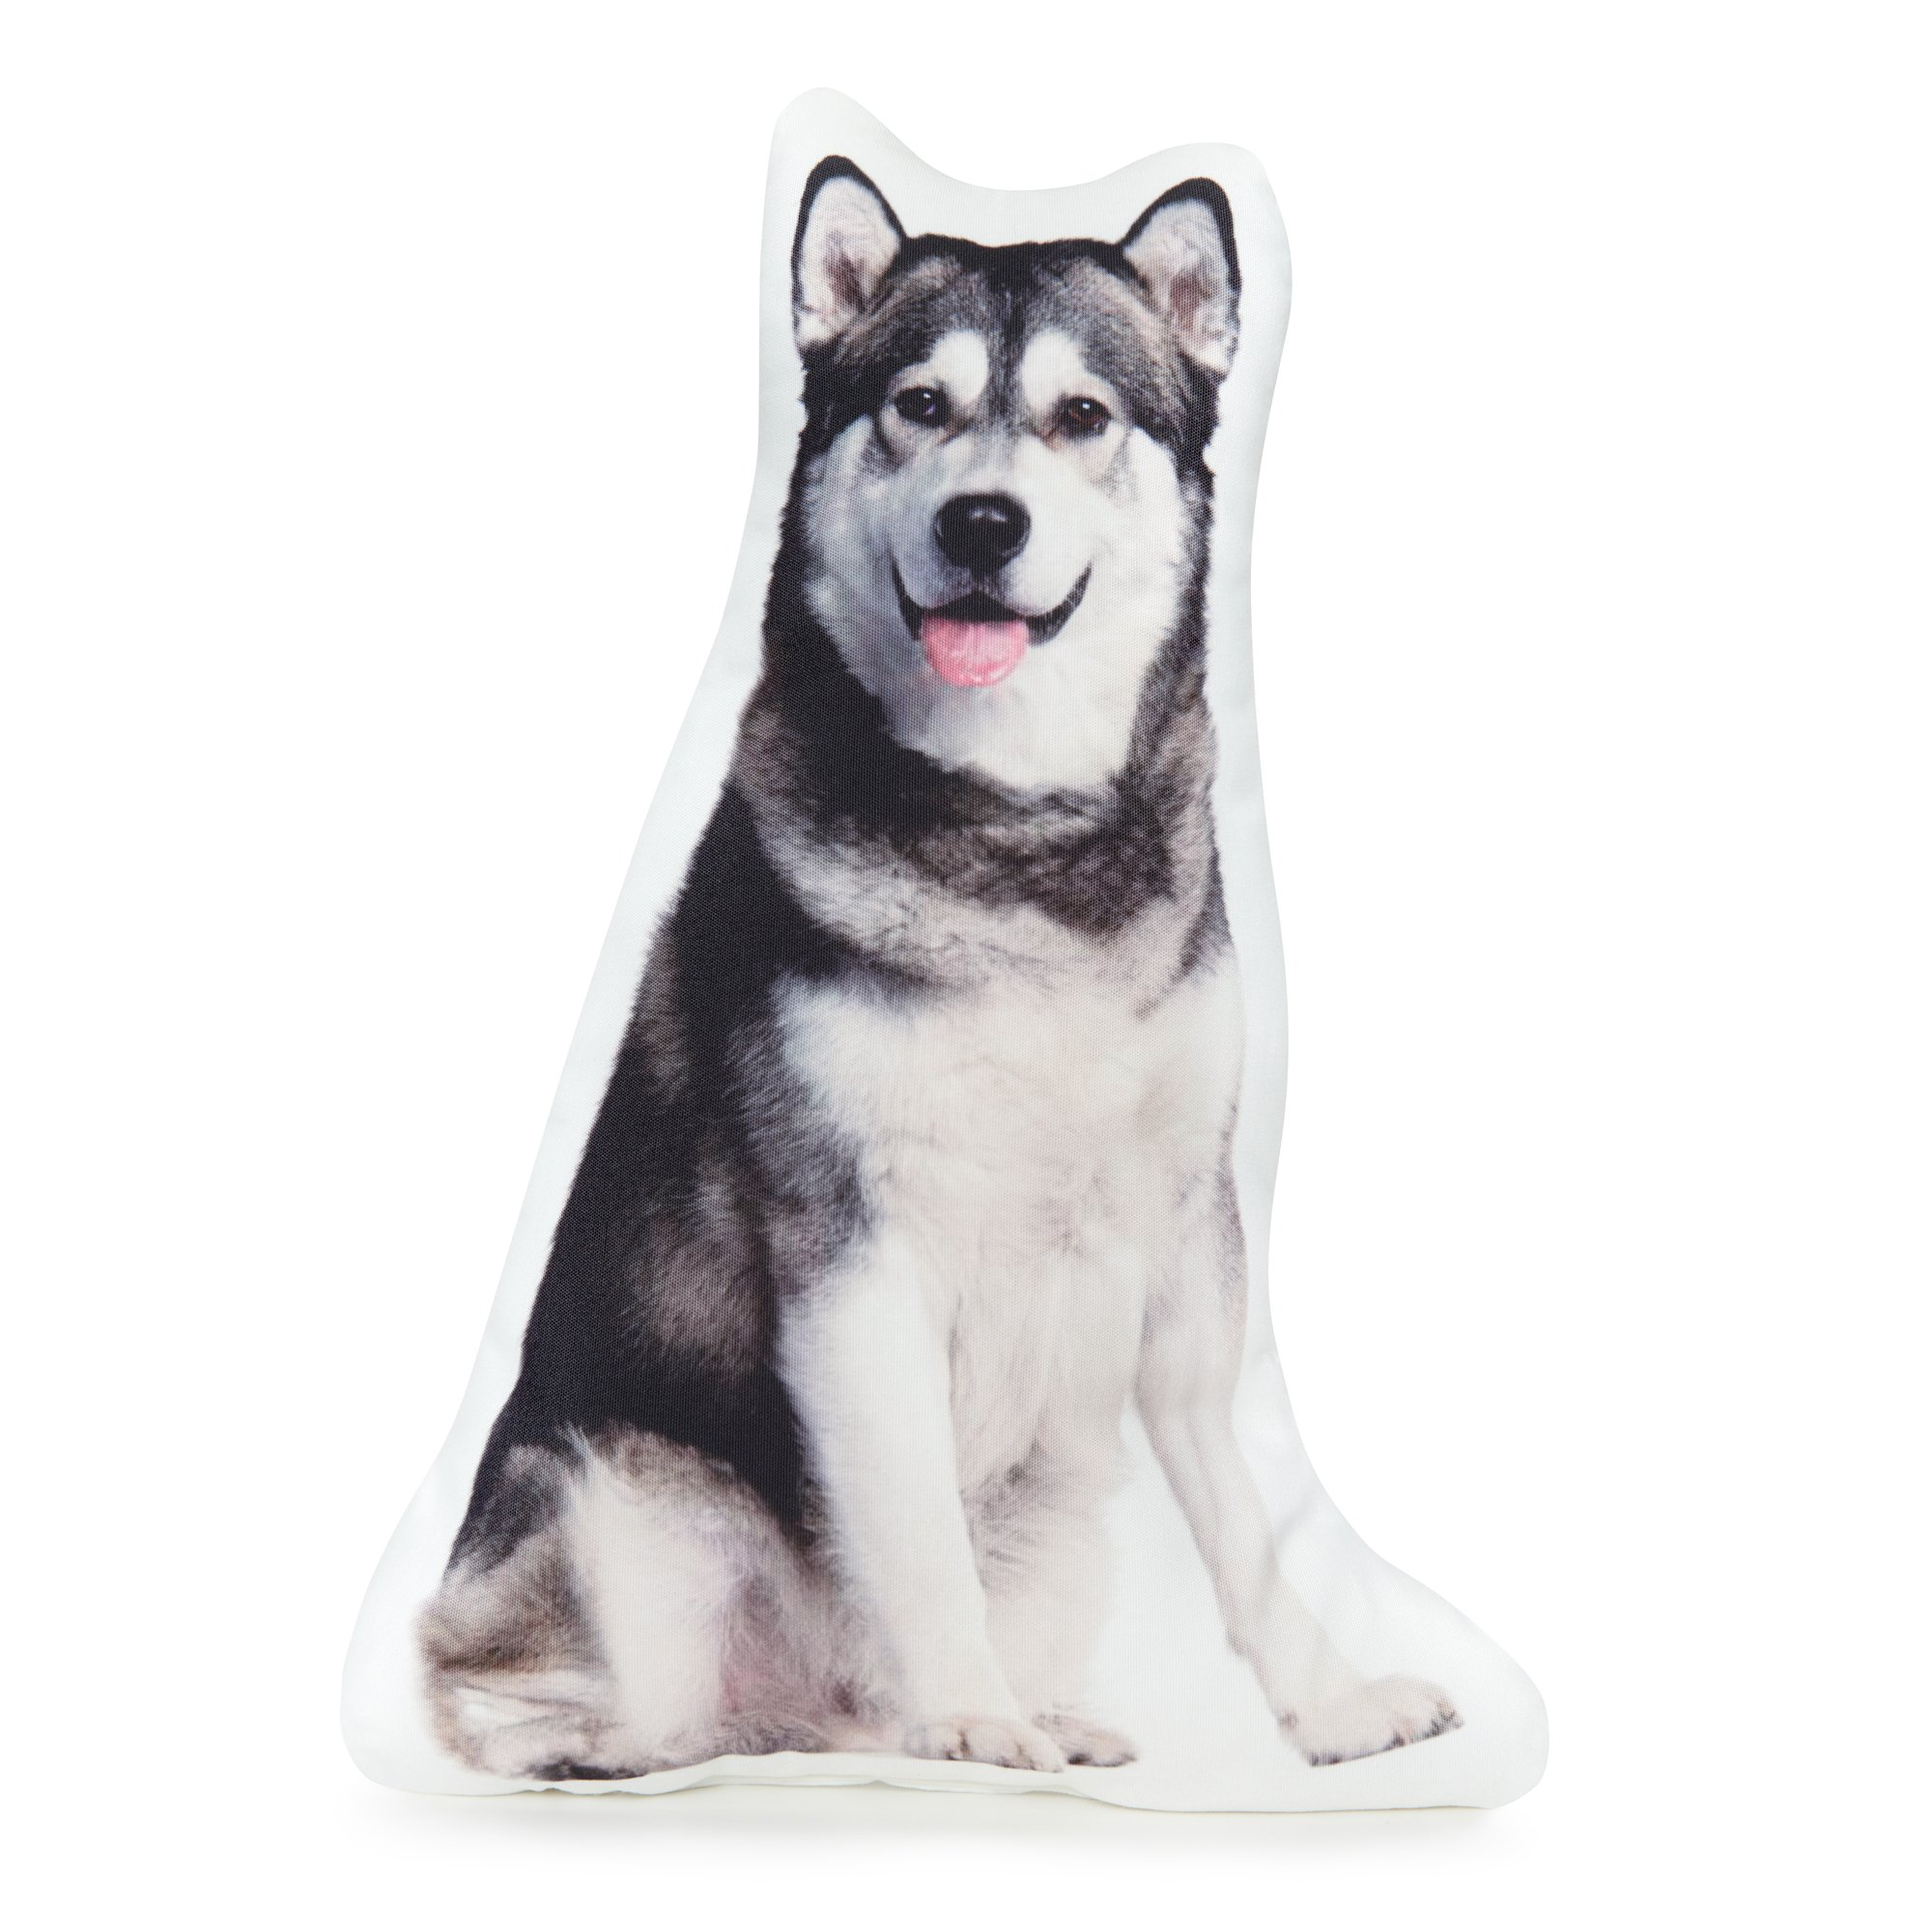 Cushion Co - Alaskan Malamute Dog Shape Pillow Life - Sized Measures 16'' x 12'' Shaped Pillows for Boys, Girls, Teens, and Mommies